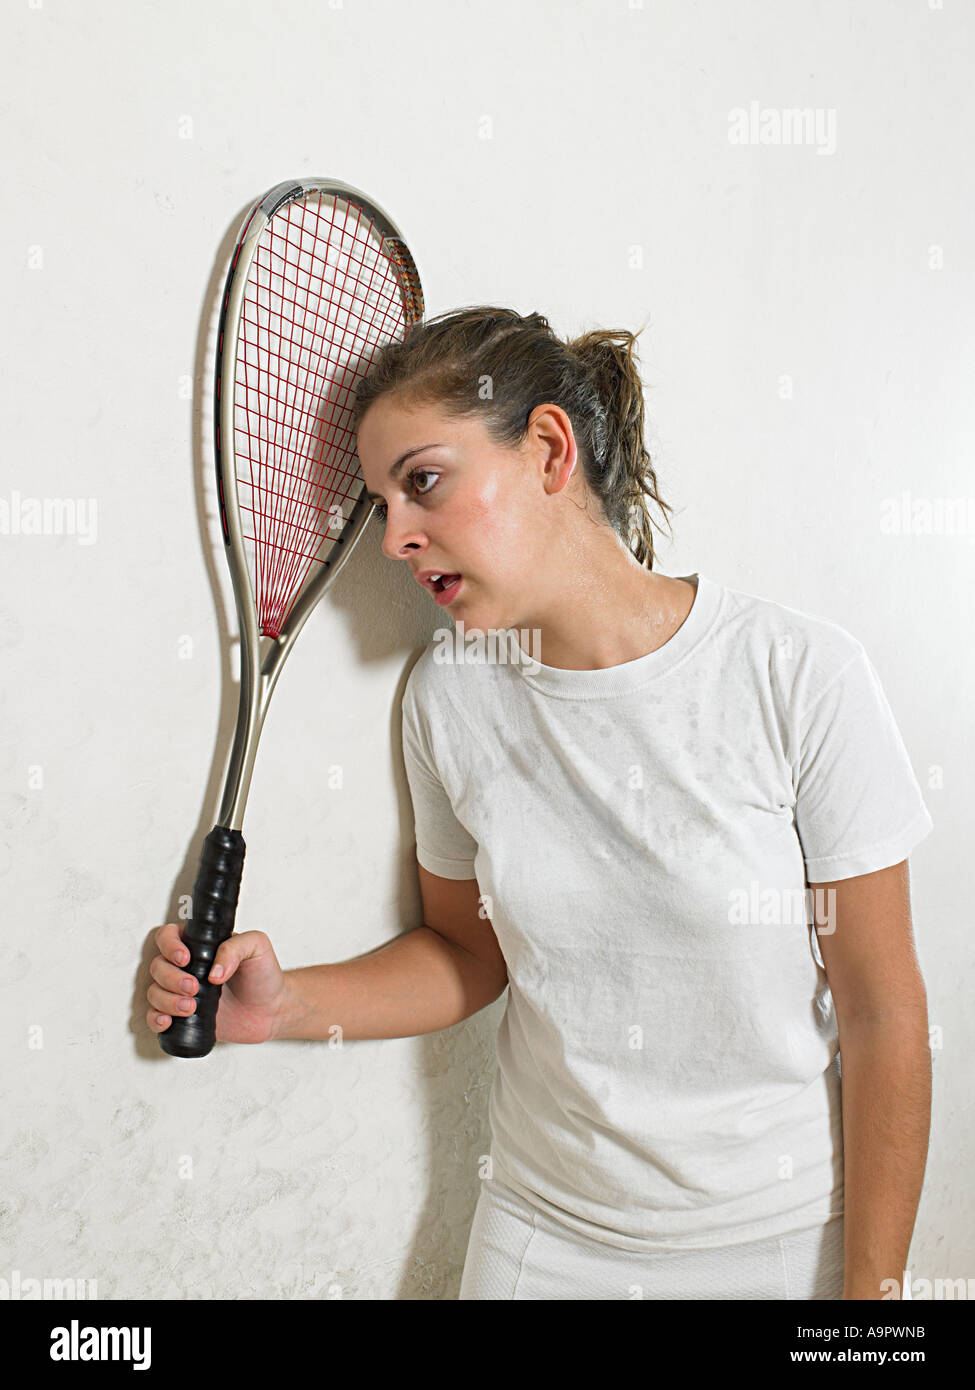 Exhausted squash player - Stock Image